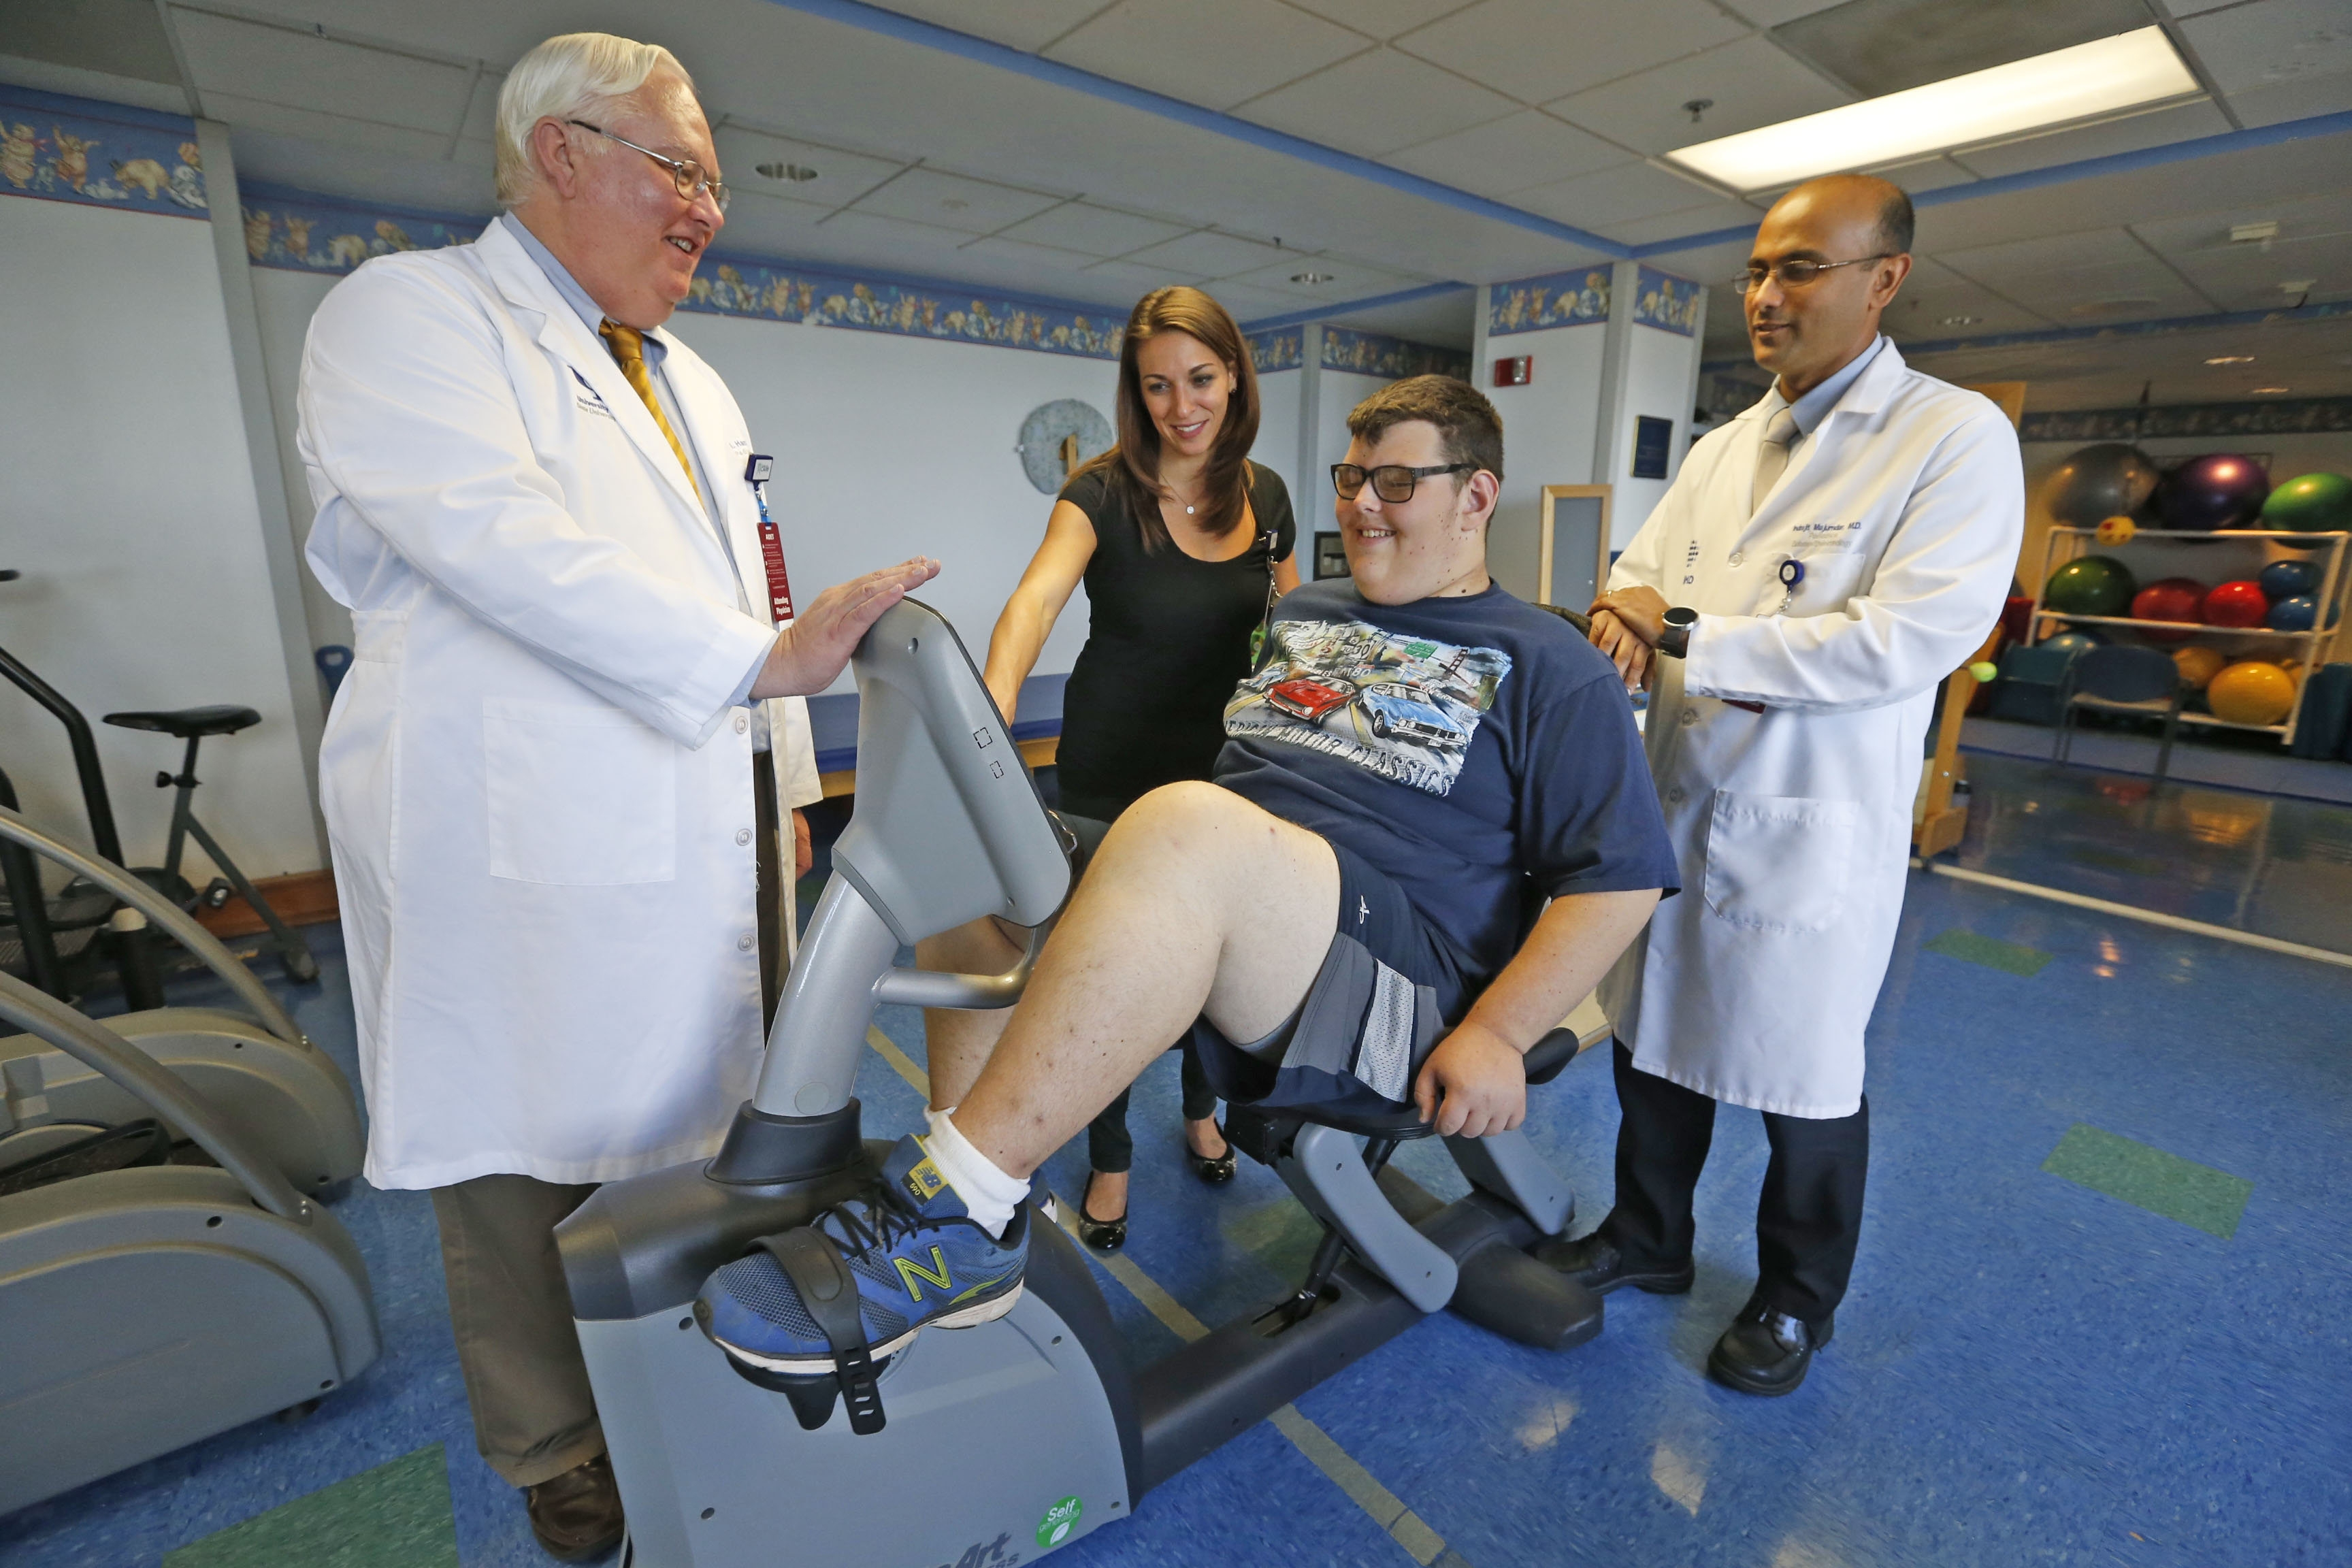 """From left, Dr. Carroll """"Mac"""" Harmon, chief of surgery, Lauren Dunaway, physical therapist, and Dr. Indrajit Majumdar, an endocrinologist, monitor Ethan Milich, 18, of Amherst, as he exercises on a recumbent bike in the physical therapy department at Women & Children's Hospital. (Robert Kirkham/Buffalo News)"""